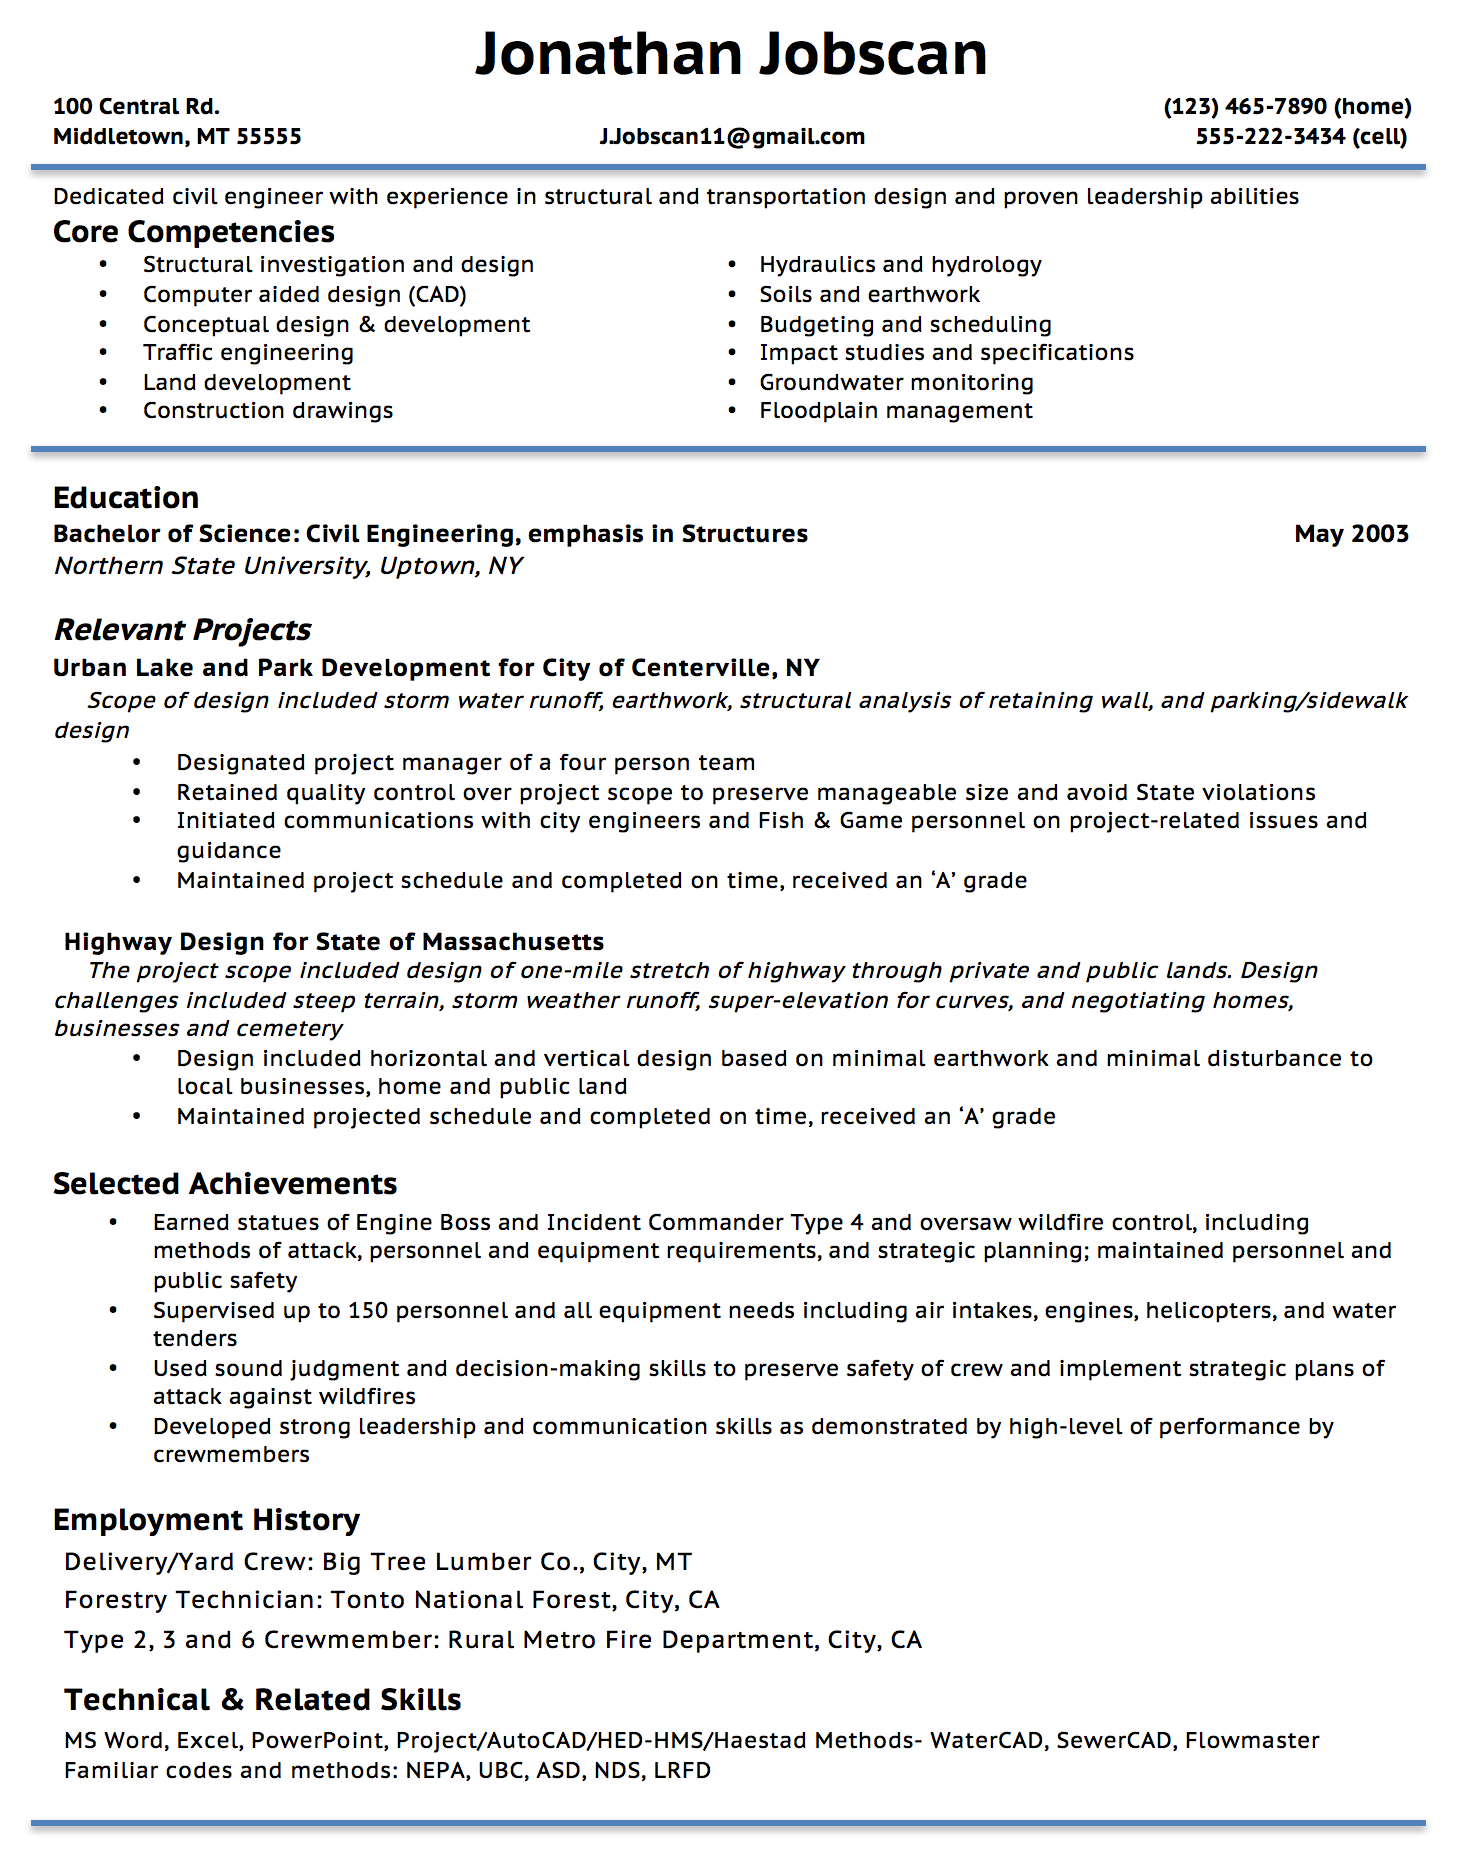 Picnictoimpeachus  Prepossessing Resume Writing Guide  Jobscan With Luxury Example Of A Functional Resume Format With Agreeable Career Objective Resume Also Server Resume Examples In Addition Search Resumes Free And Keywords To Use In A Resume As Well As Medical Assistant Resume Skills Additionally Skills To Write On A Resume From Jobscanco With Picnictoimpeachus  Luxury Resume Writing Guide  Jobscan With Agreeable Example Of A Functional Resume Format And Prepossessing Career Objective Resume Also Server Resume Examples In Addition Search Resumes Free From Jobscanco